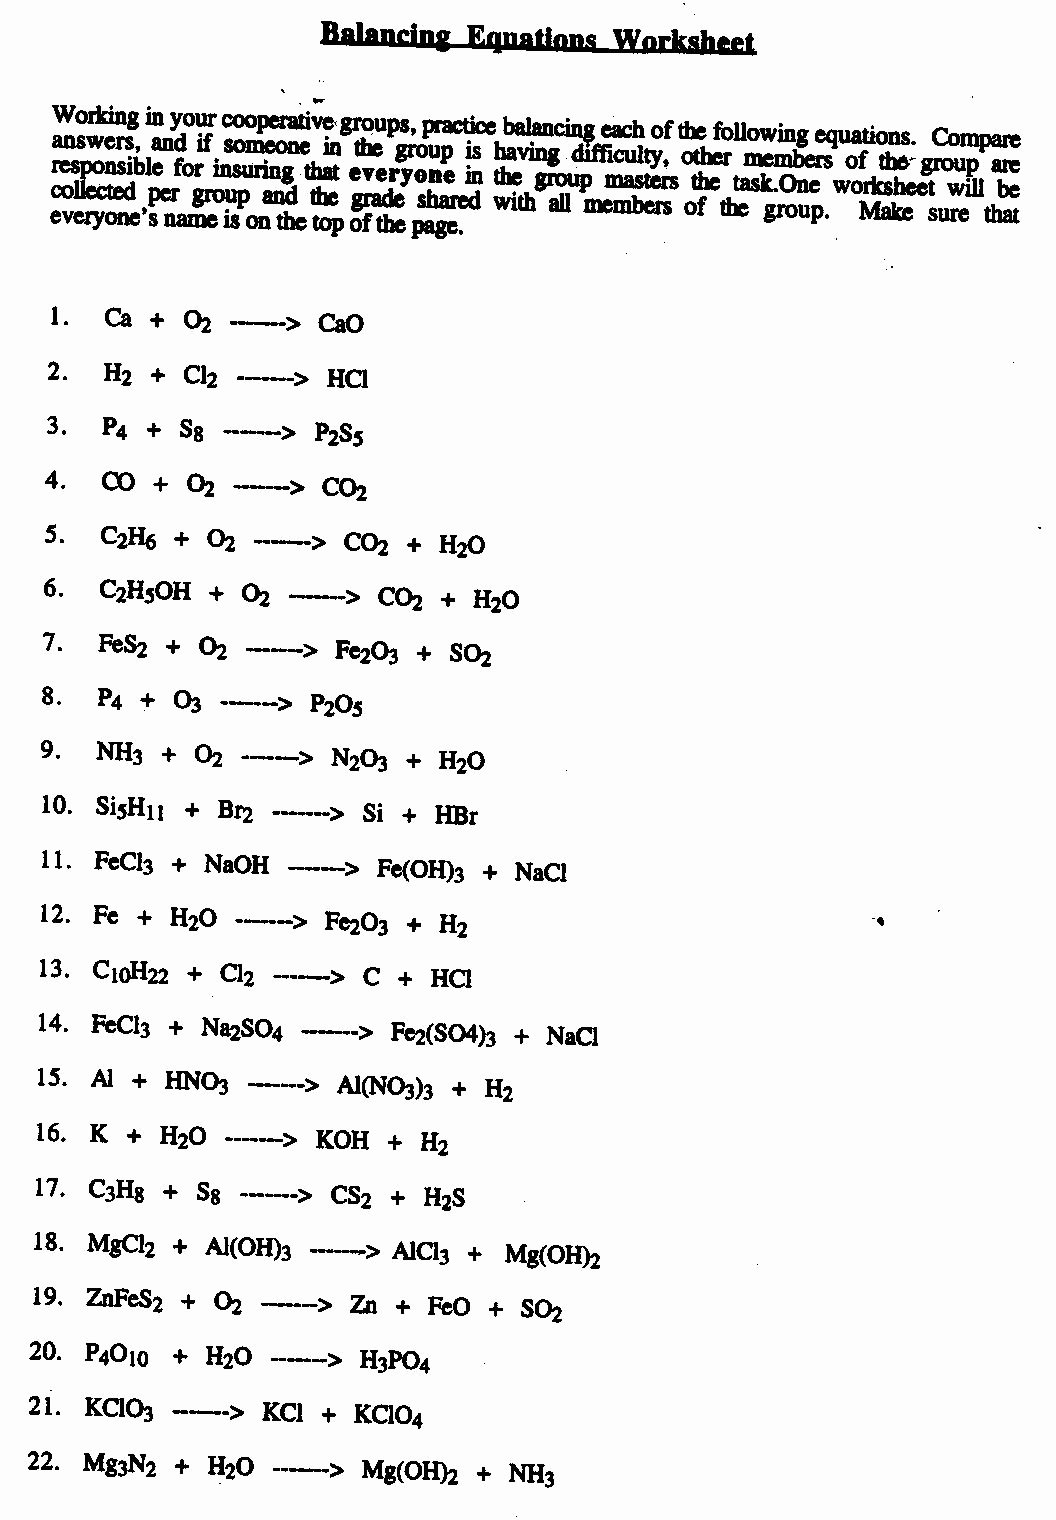 Balancing Chemical Equations Worksheet Answers Best Of 12 Best Of Types Chemical Reactions Worksheet